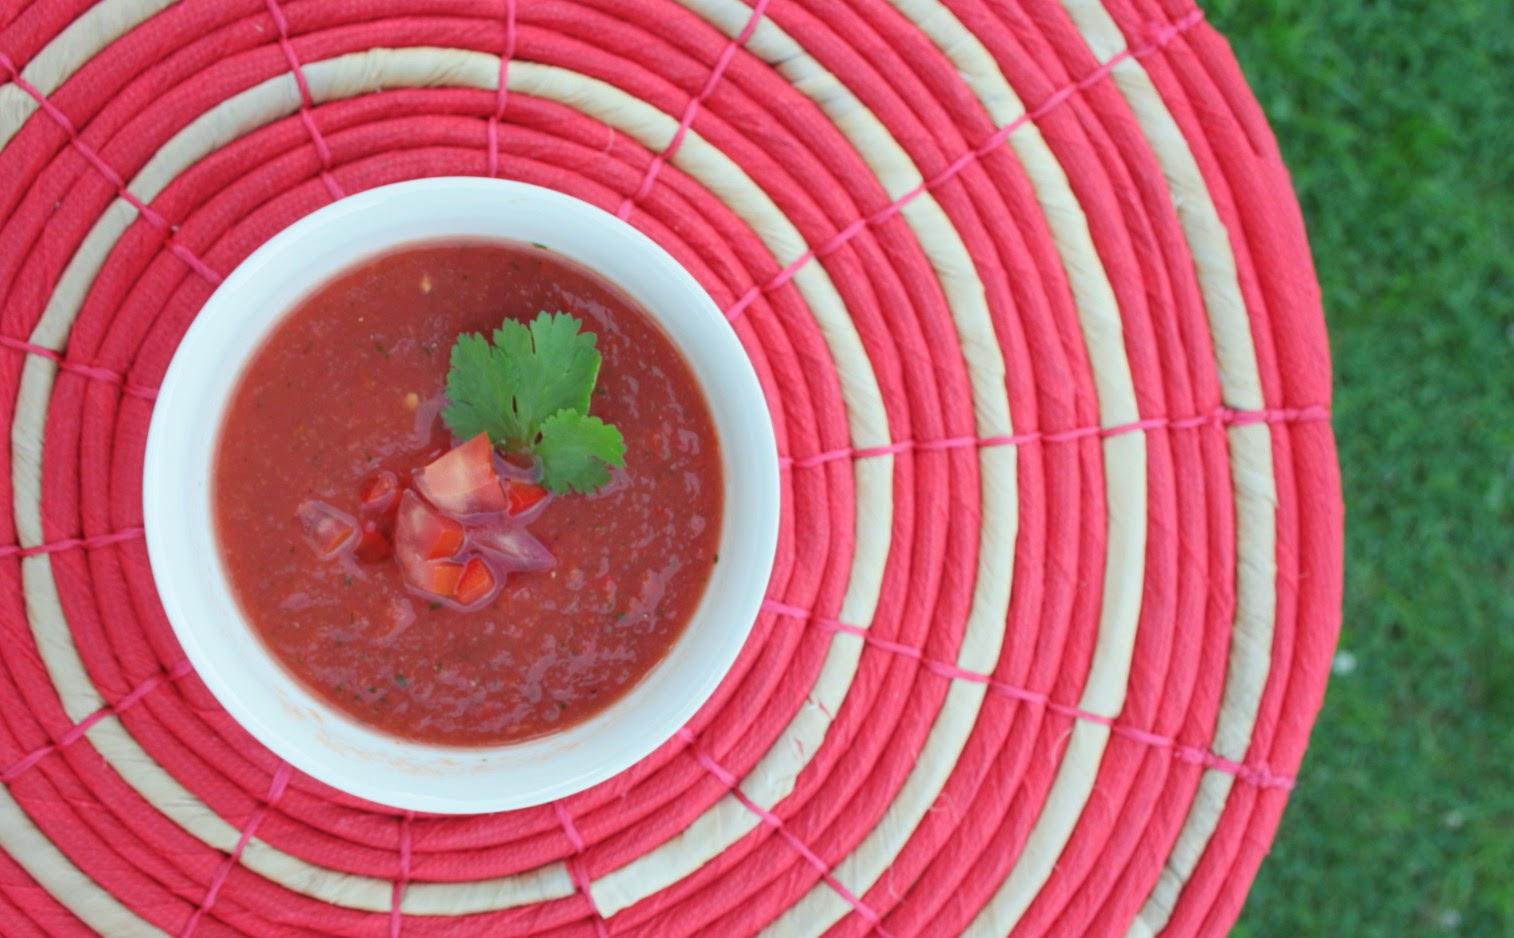 Summery gazpacho - healthy, light, easy to make and very refreshing